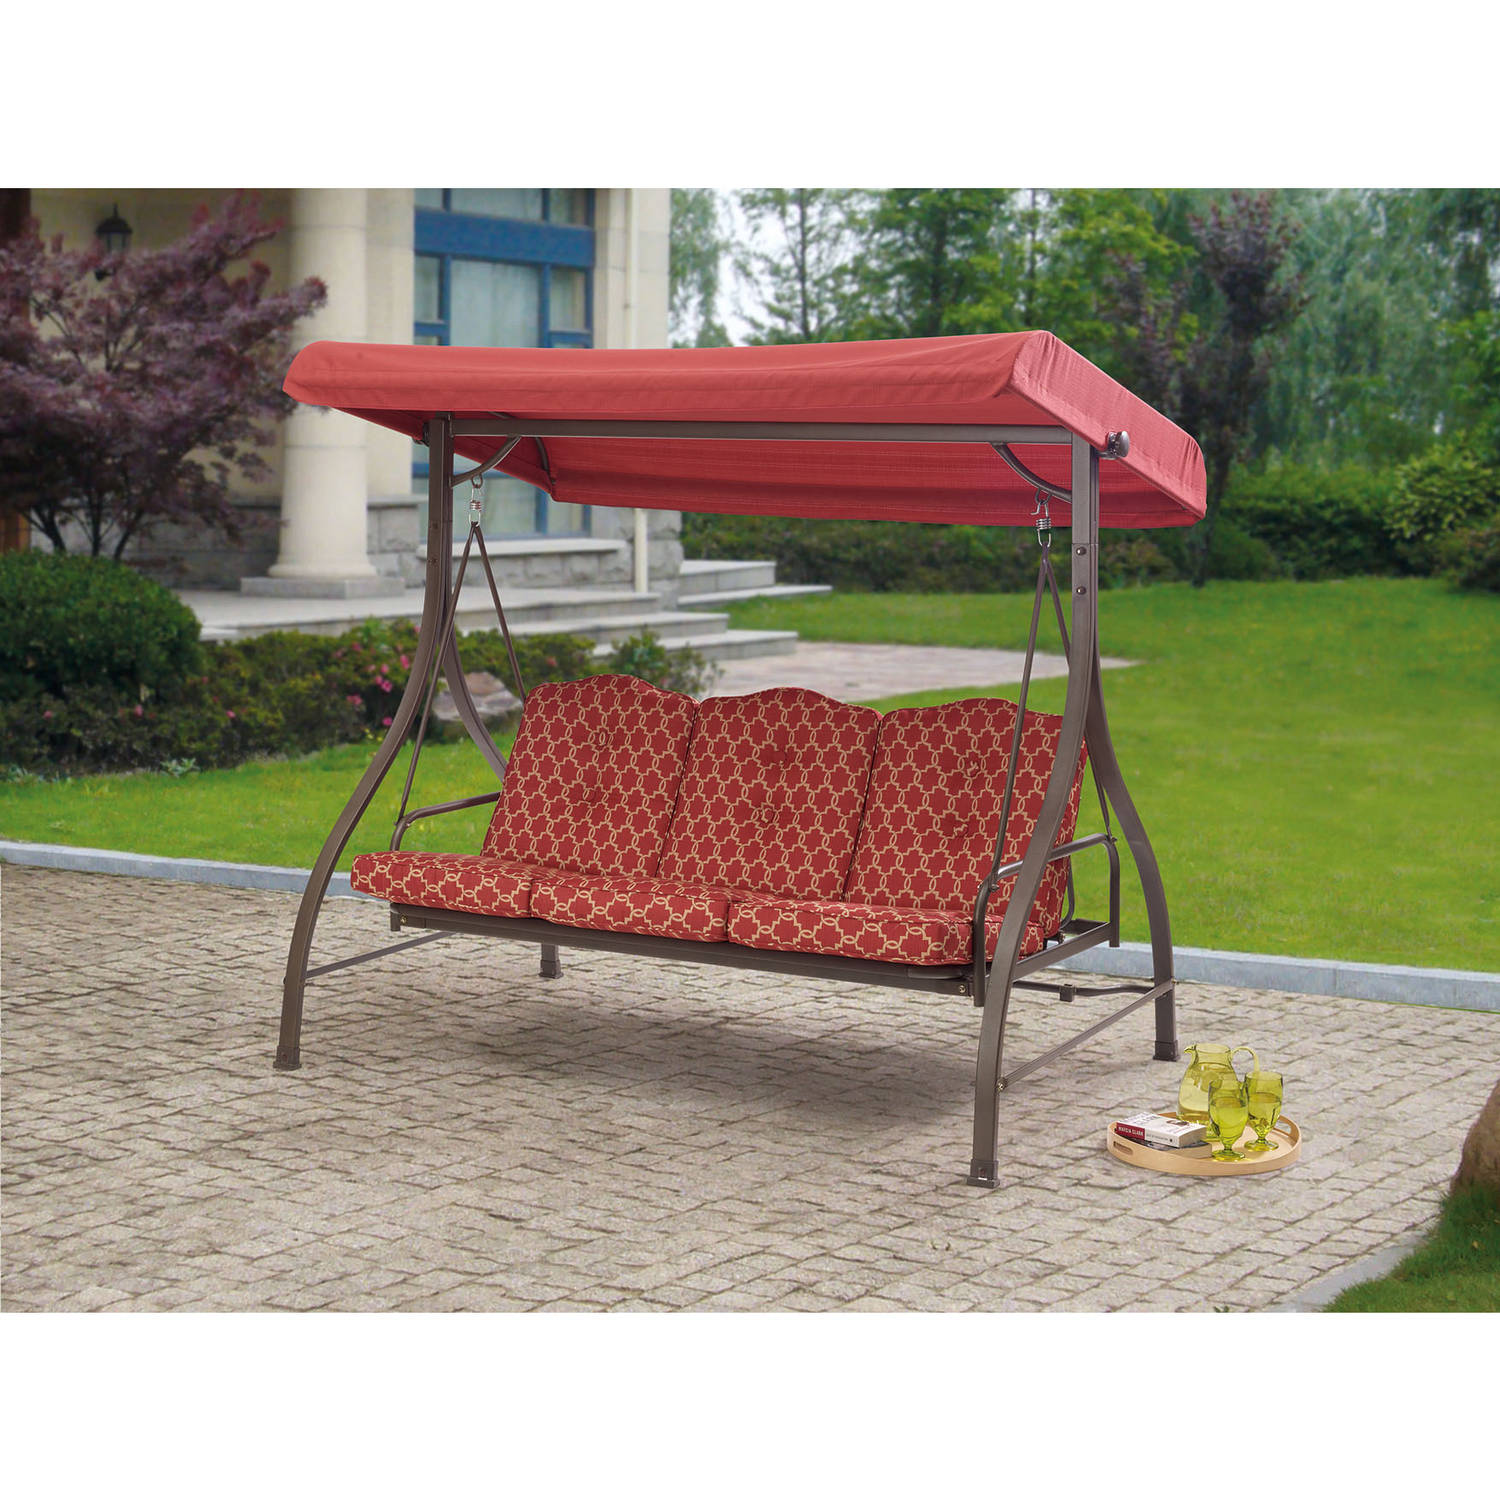 Mainstays Classic Outdoor 3 Person Sling Canopy Porch Swing   Walmart.com